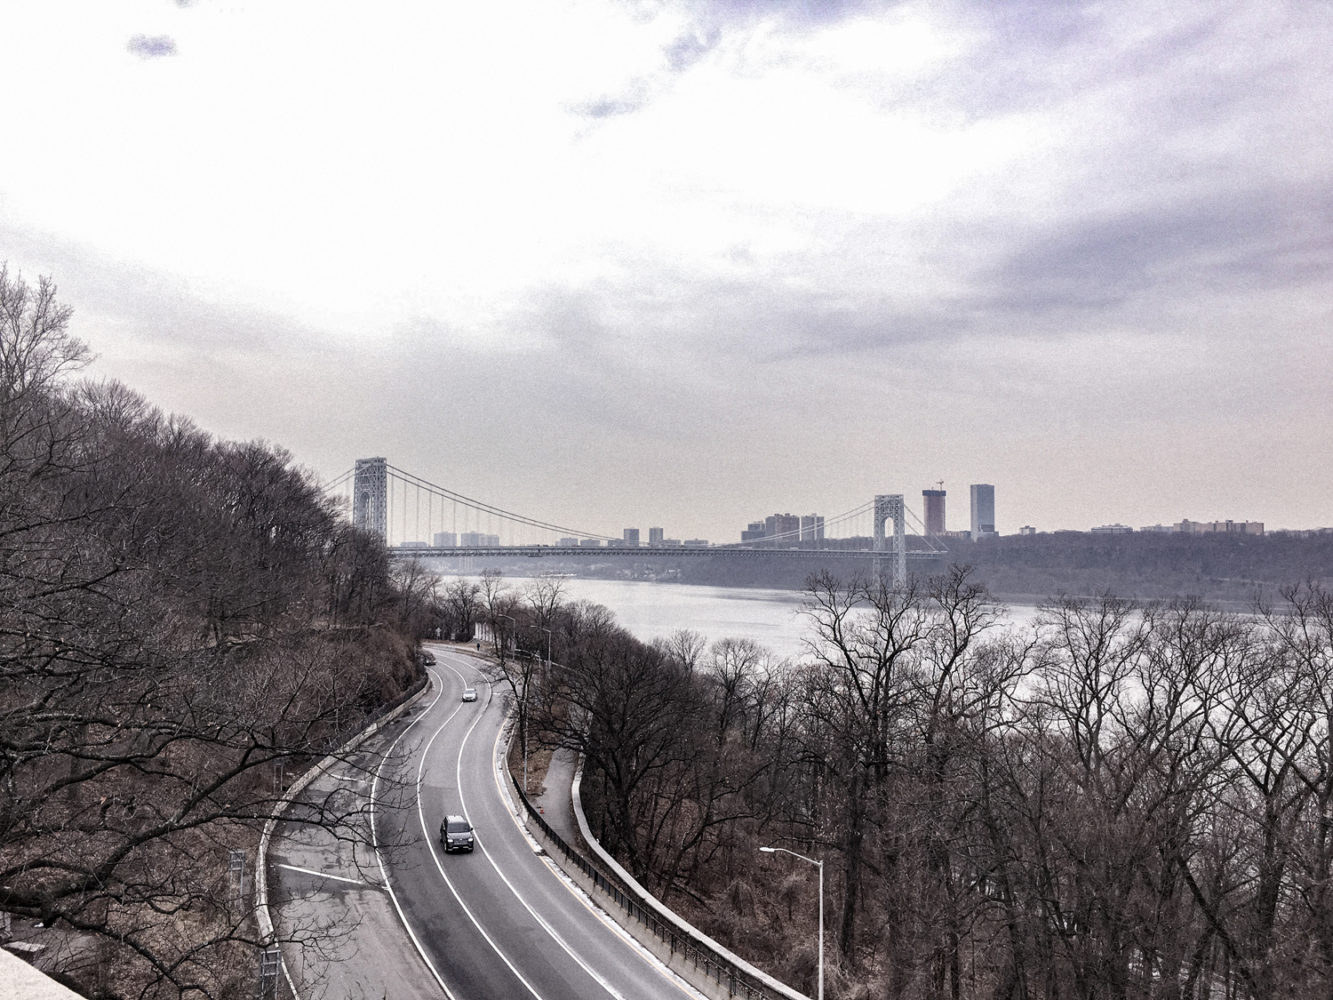 Vue depuis le site de The Cloisters sur l'Hudson River et le Washington Bridge